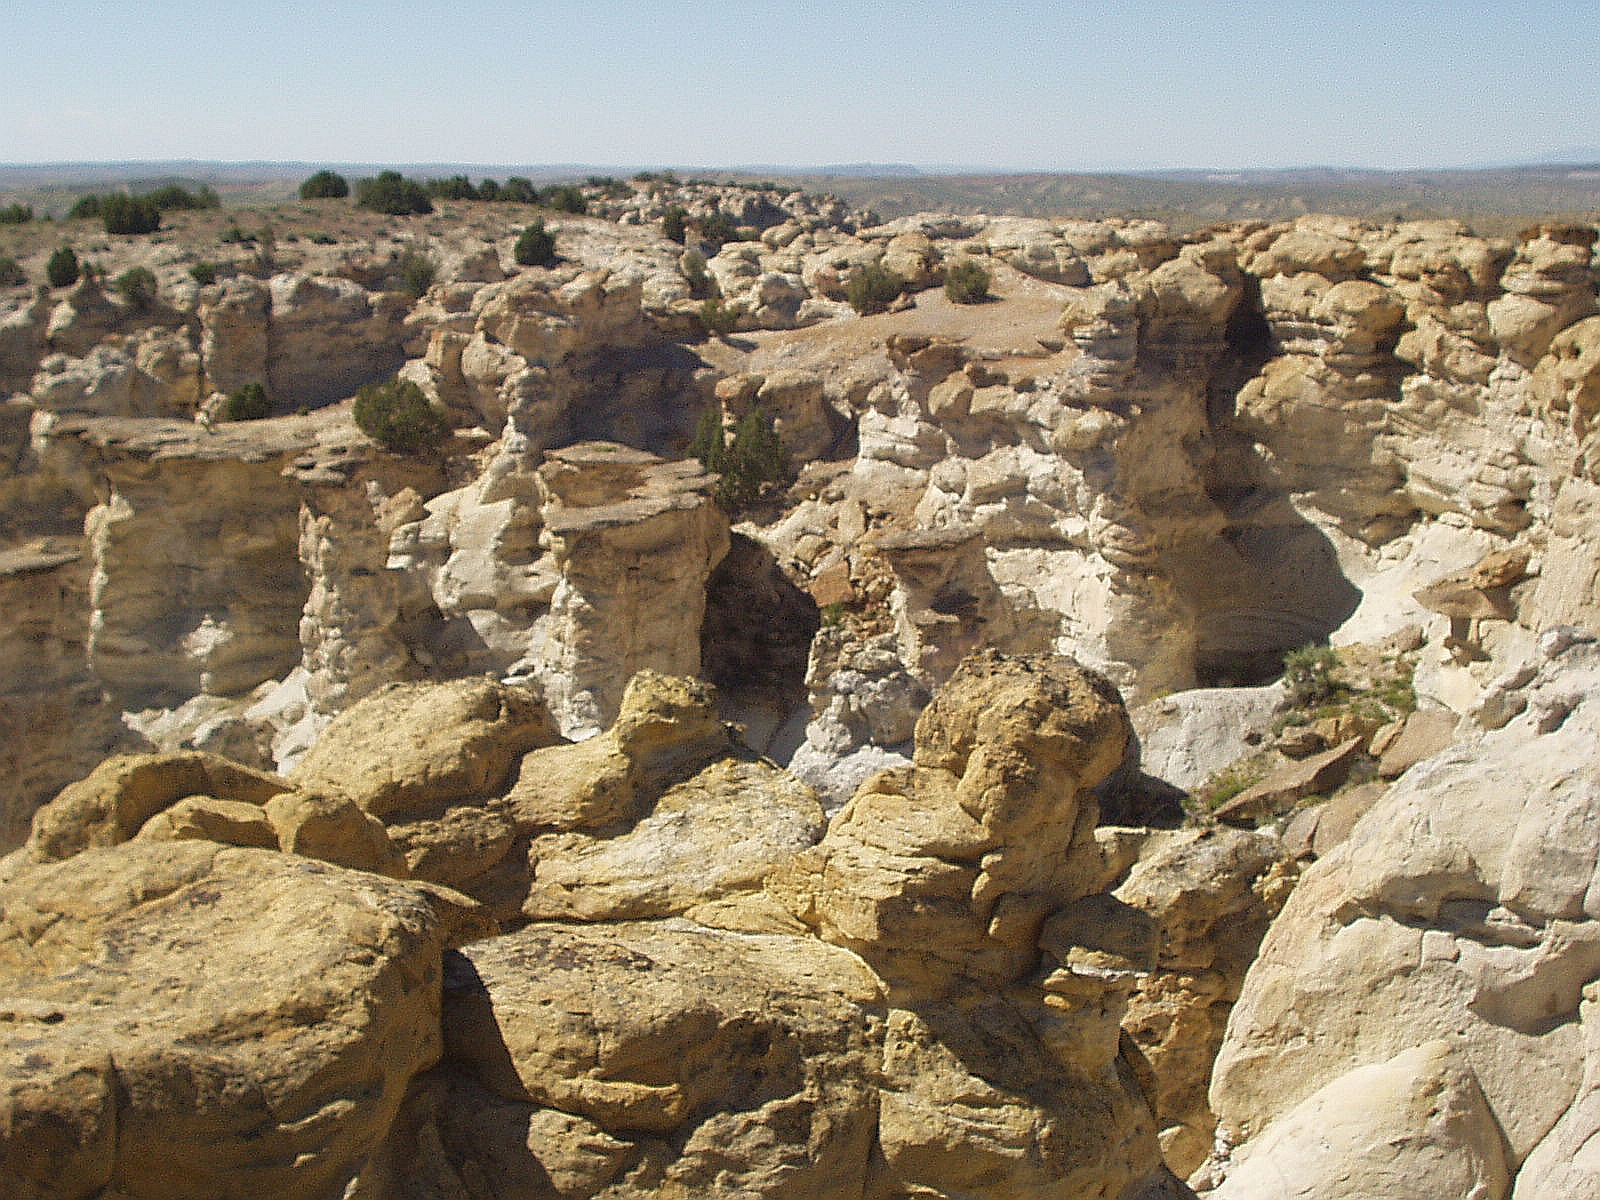 Rocks of Wyoming: Castle Gardens, Wyoming